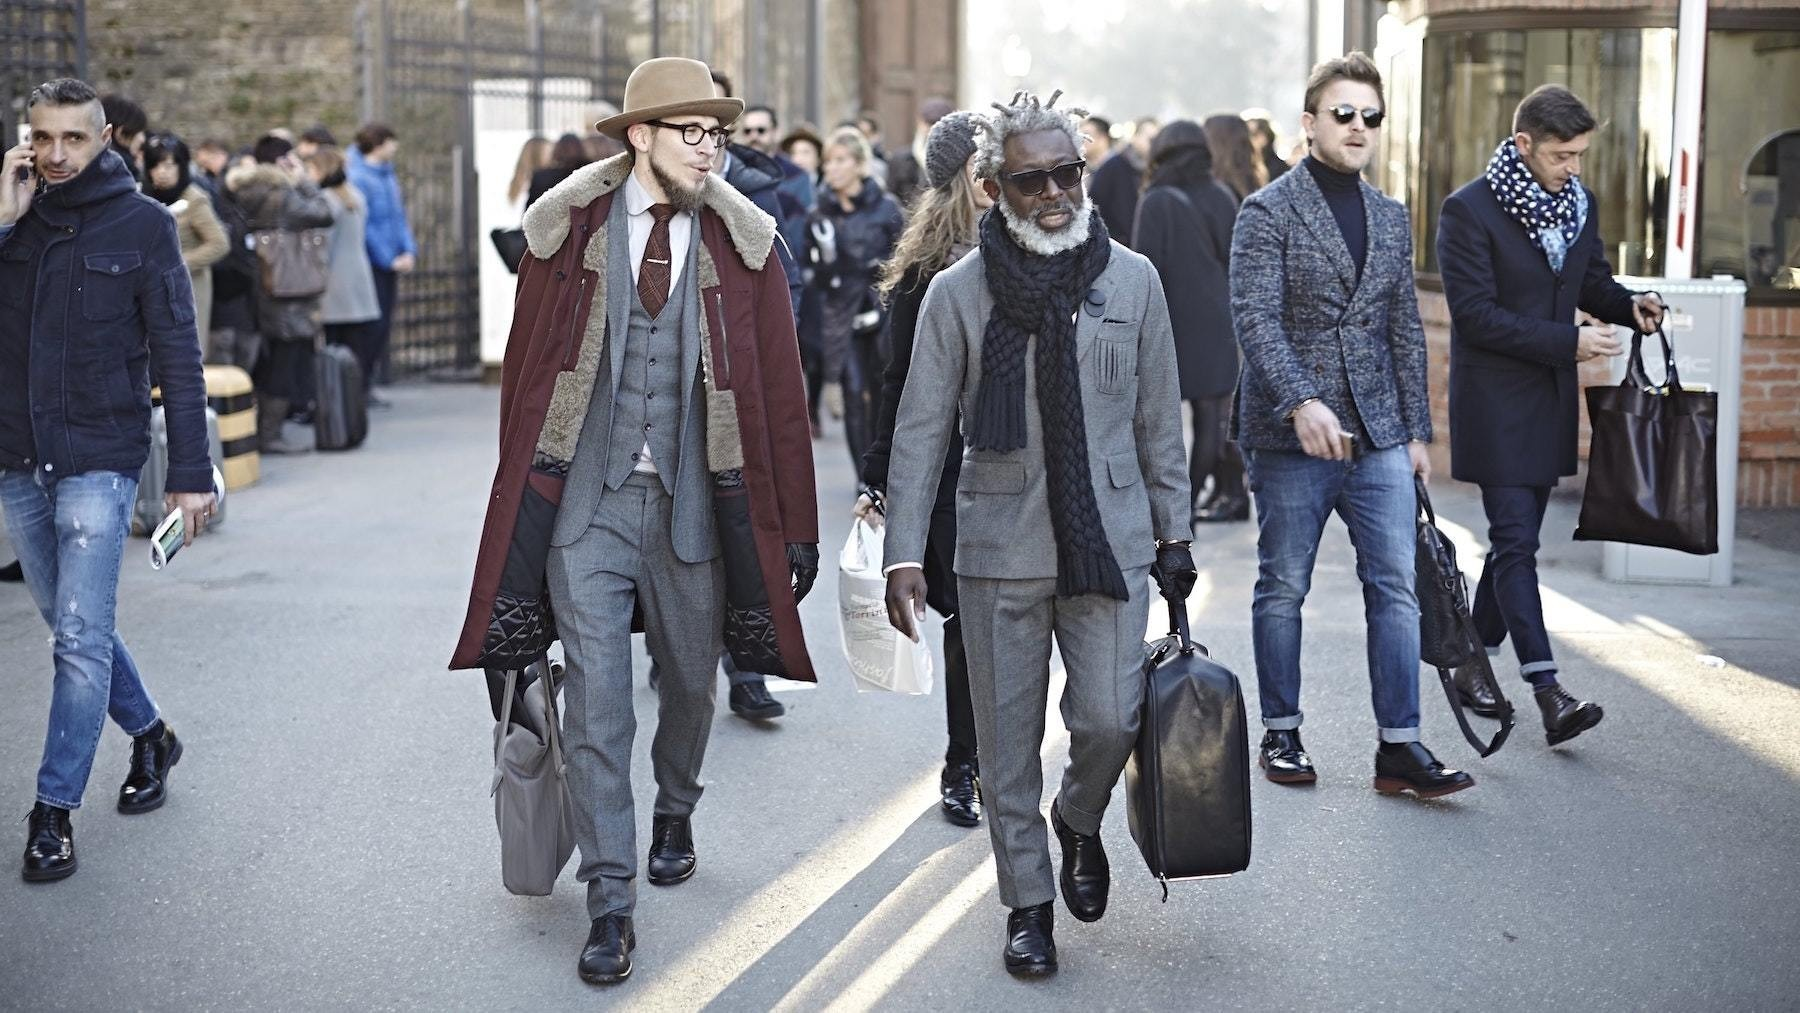 #Menswear is Dead. What's Next?